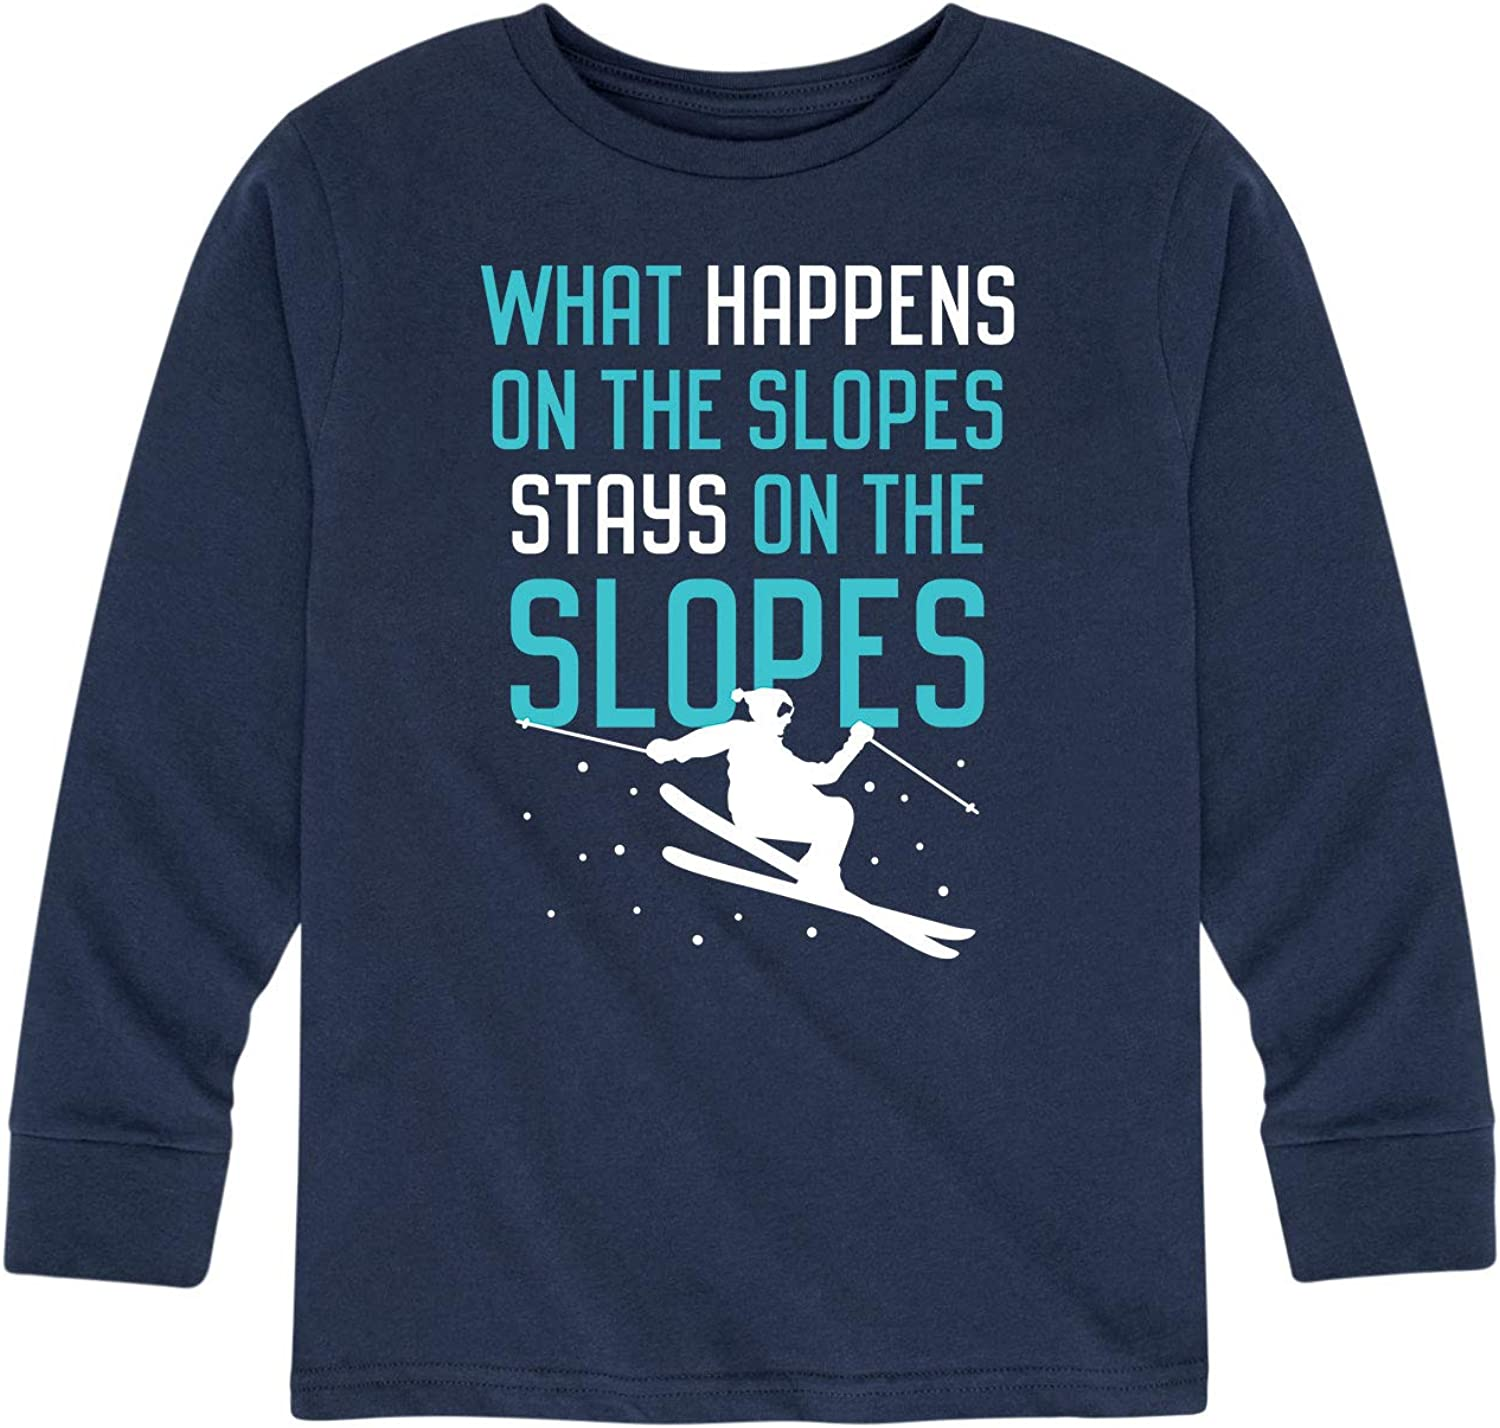 What Happens On The Slopes-Toddler and Youth Long Sleeve T-Shirt